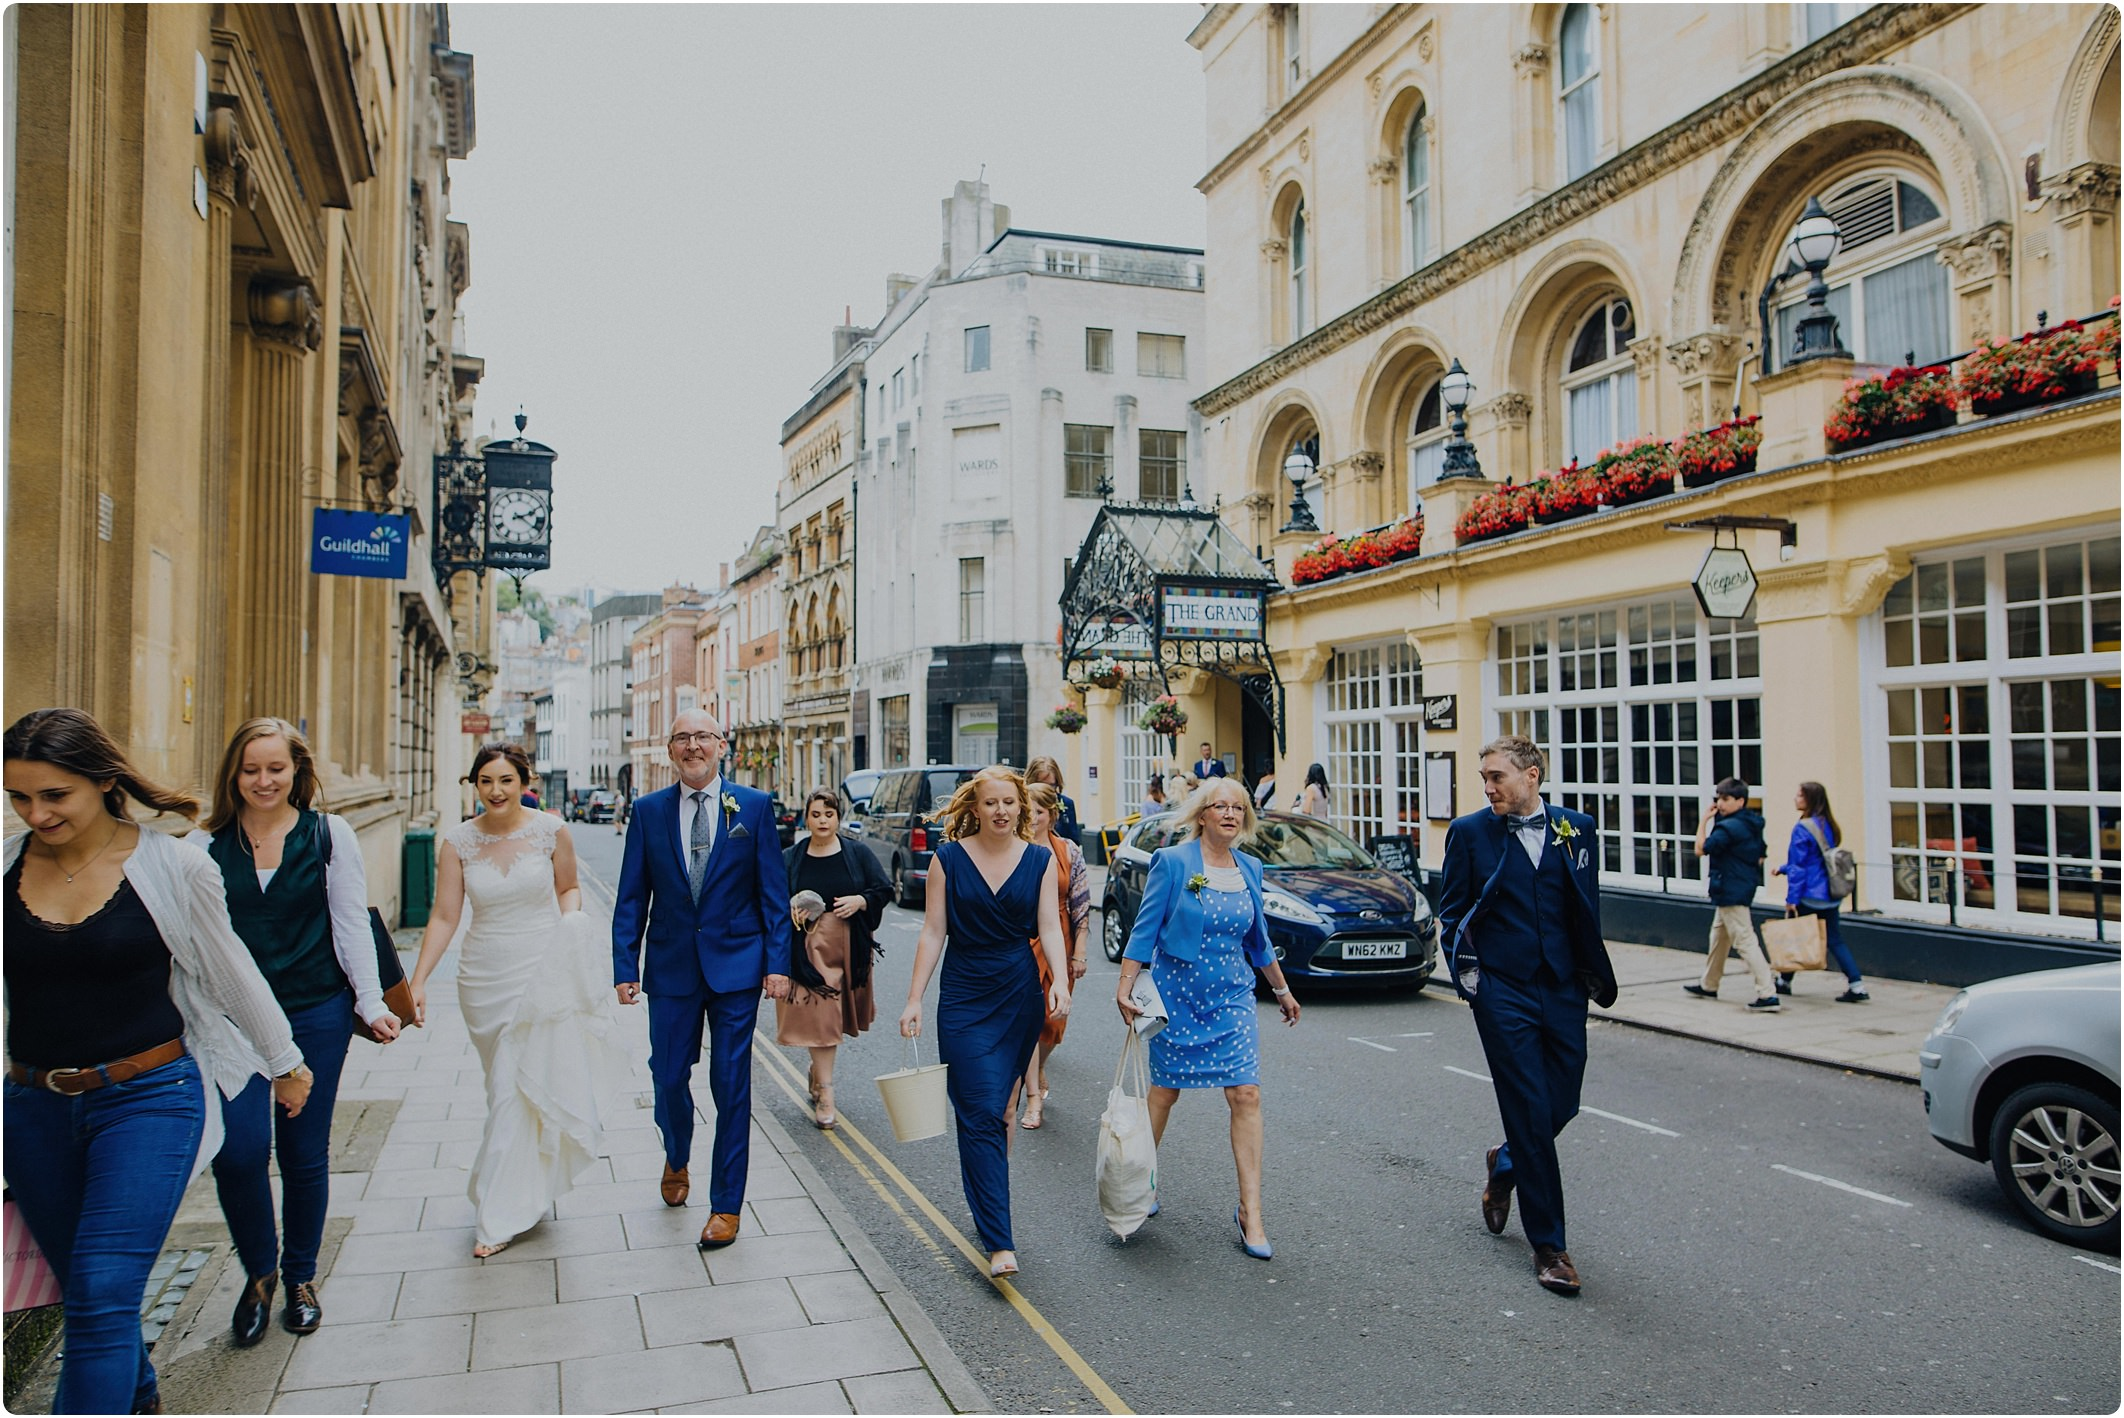 bridal party walking from Grand Hotel in Bristol to City Hall